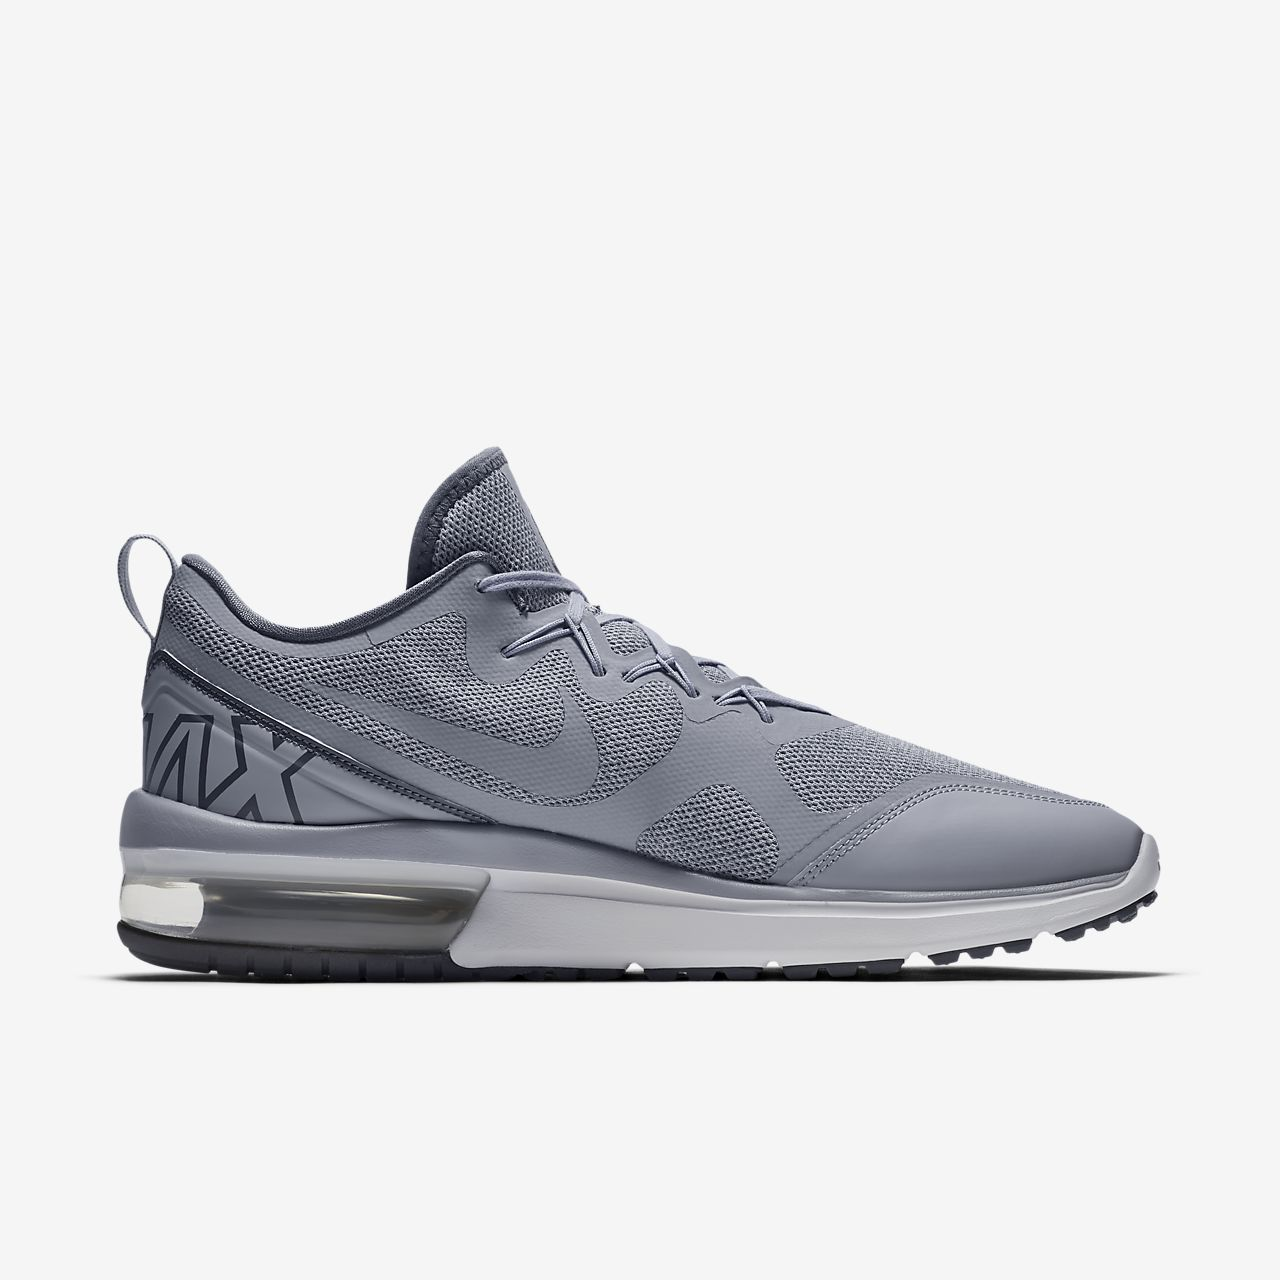 7d7f49bad6e65 Nike Air Max Fury Men s Running Shoe. Nike.com CA